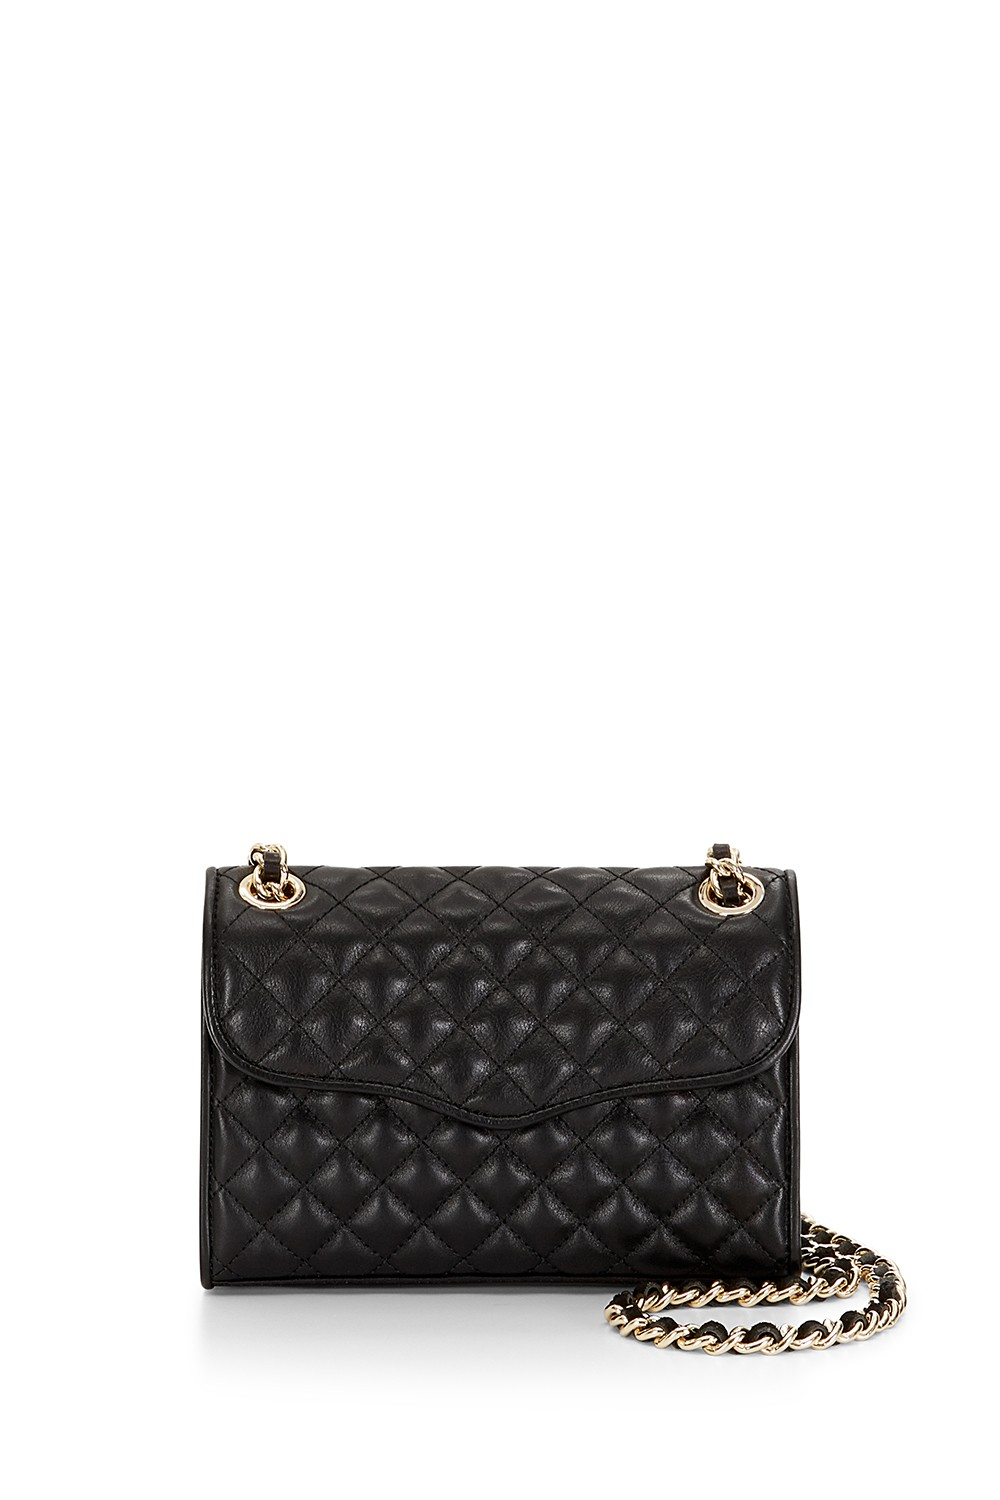 minkoff from rebecca in red search bag quilted mini rm engine affair quilt away label fire blue